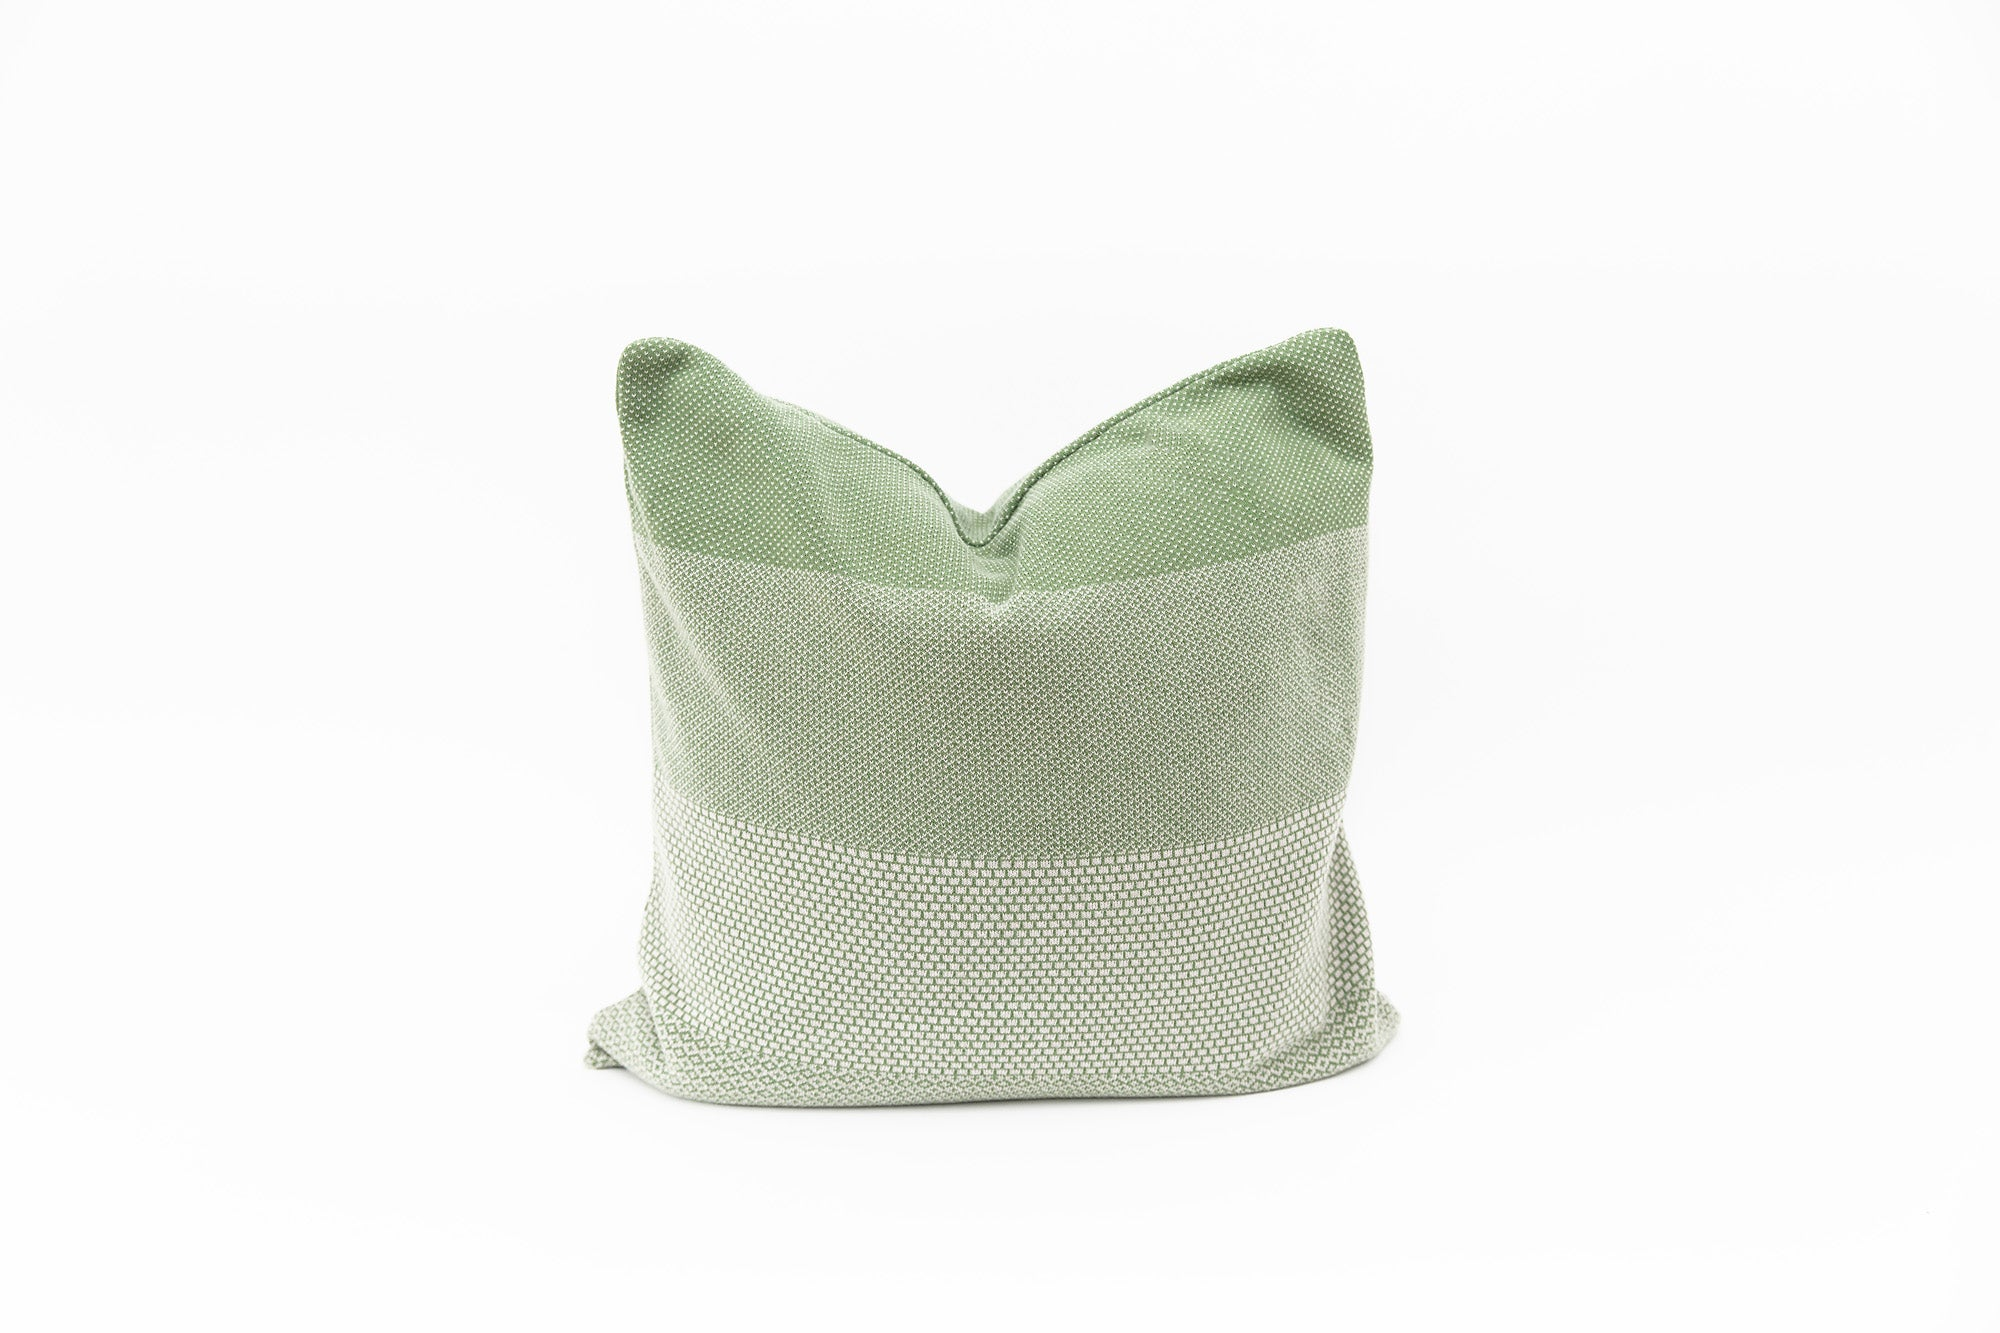 Elephant Cushion - Green